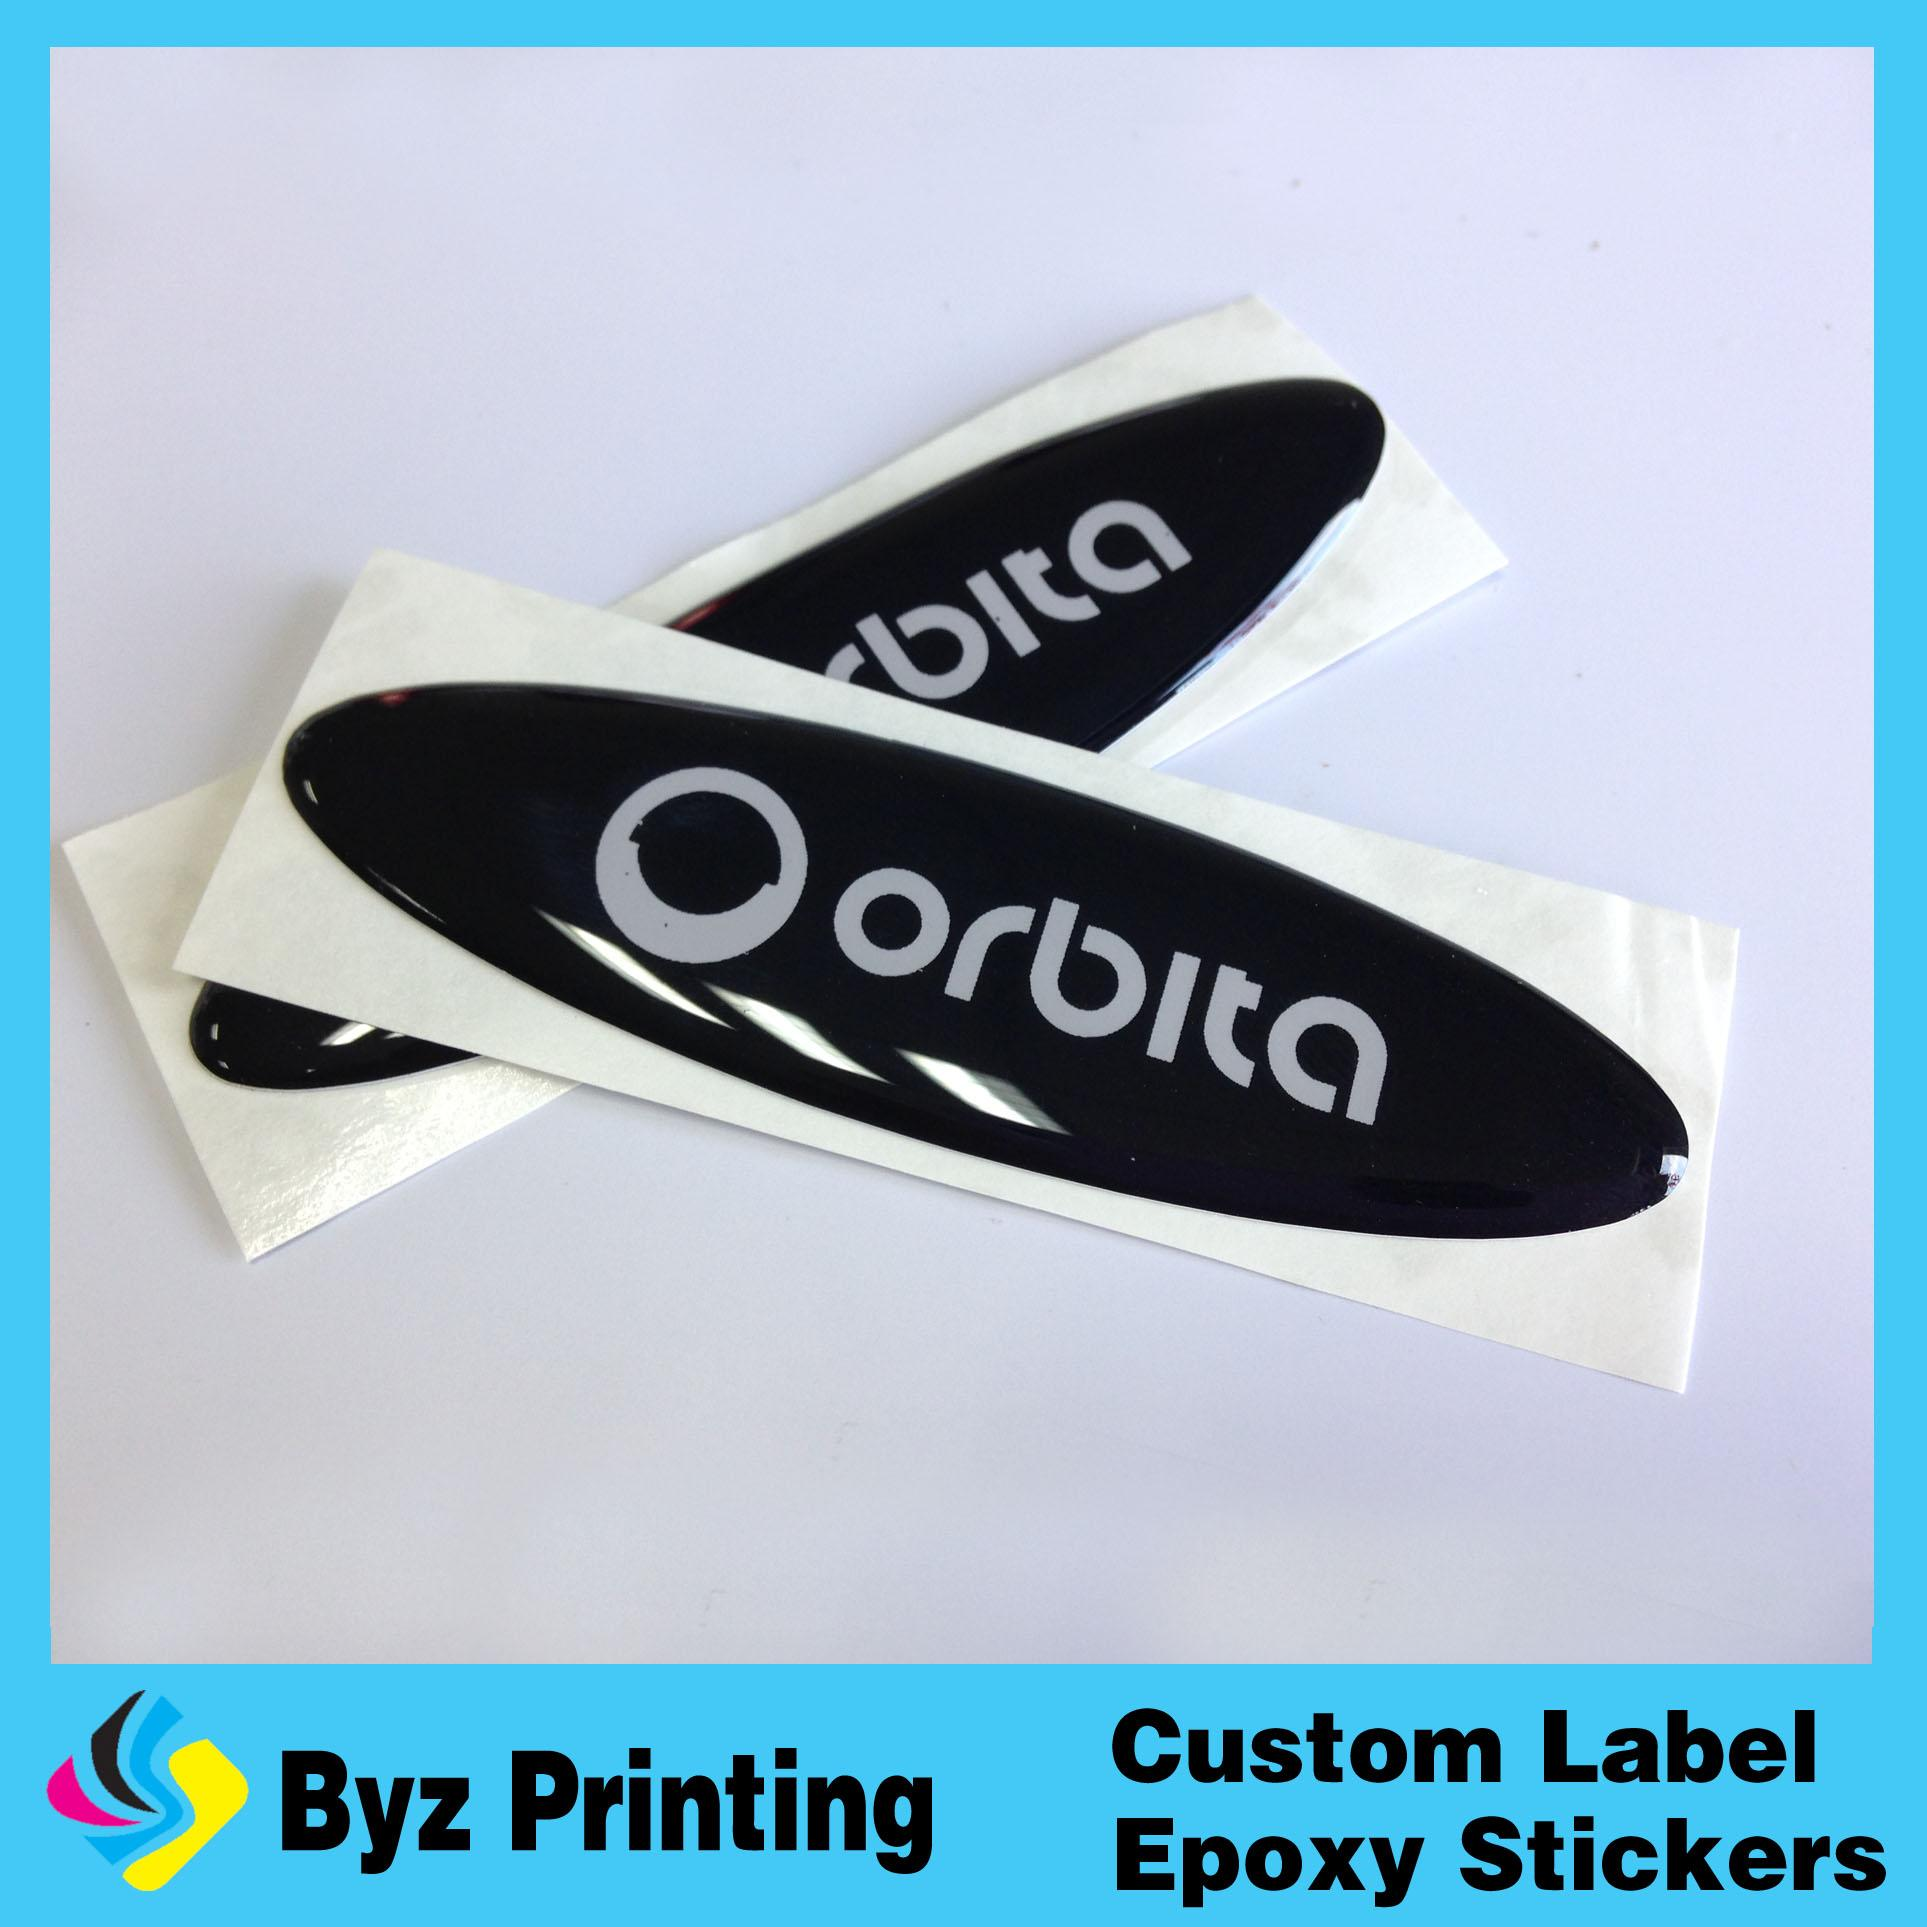 Custom make epoxy resin clear epoxy sticker, 3D Dome custom flag 3D sticker  doming machine